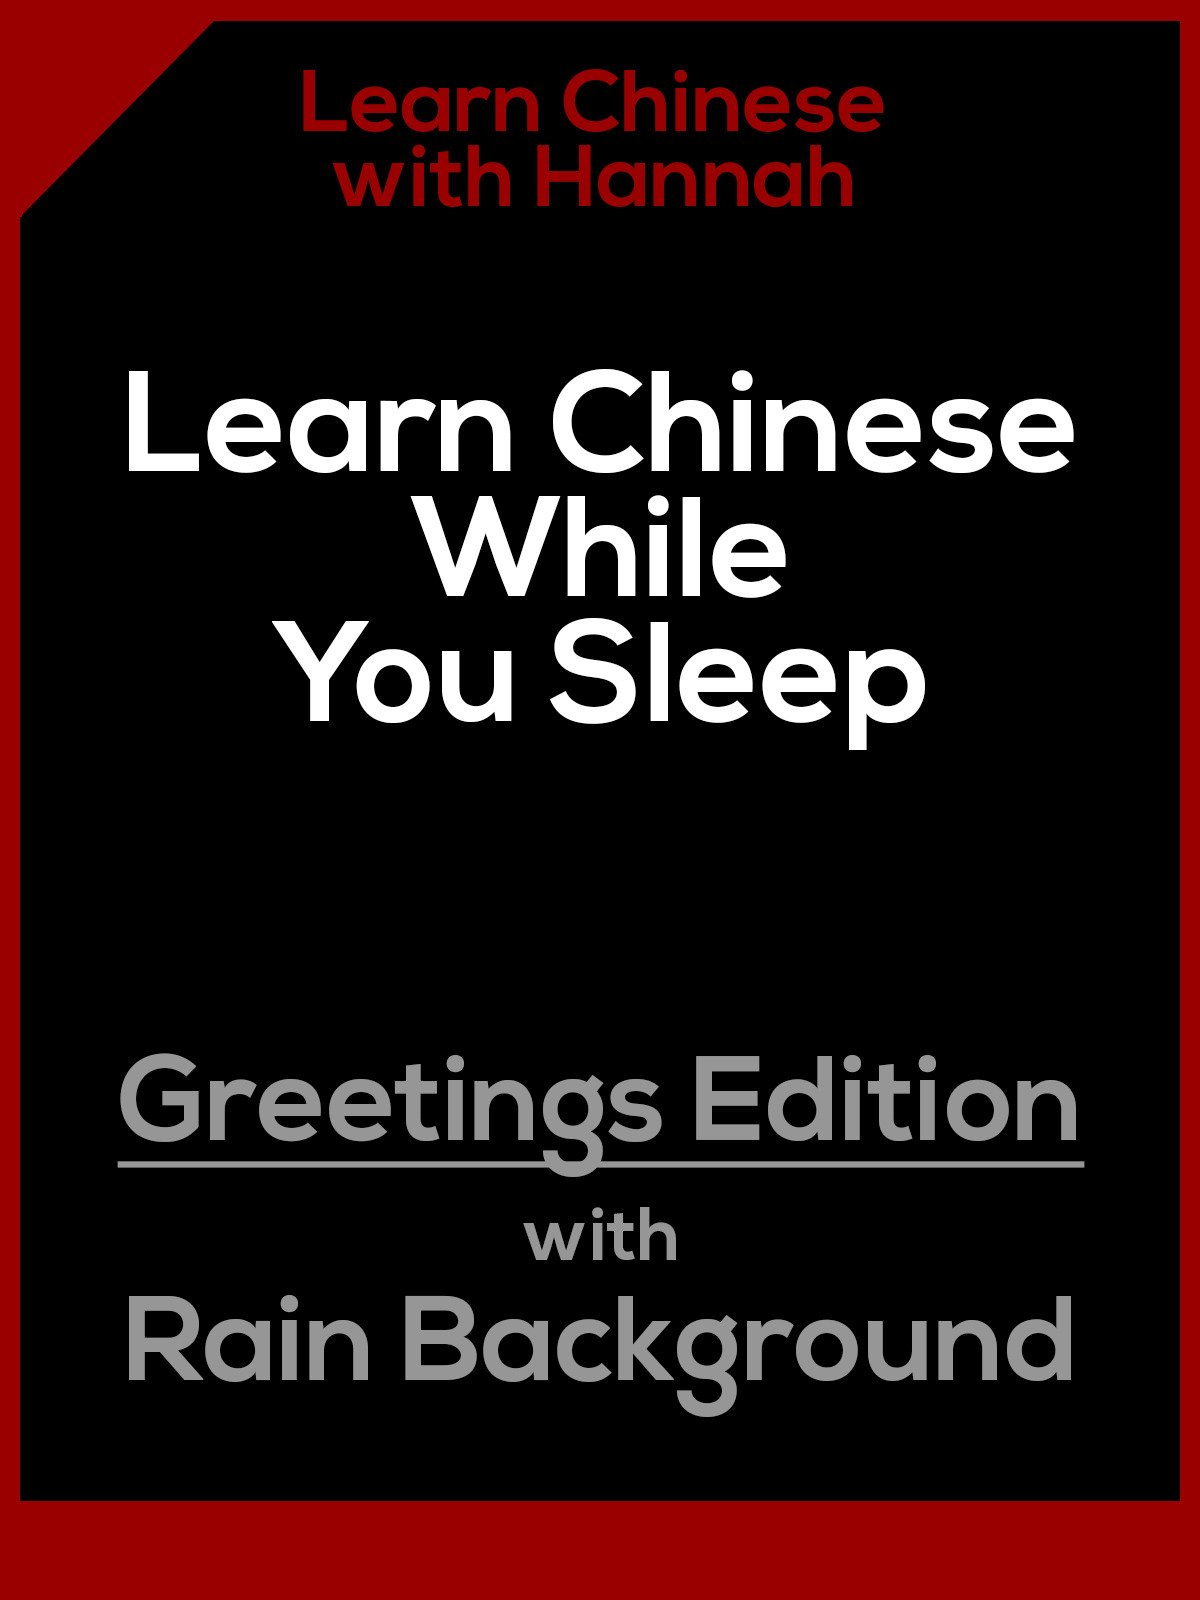 Learn Chinese While You Sleep: Greetings Edition with Rain Background